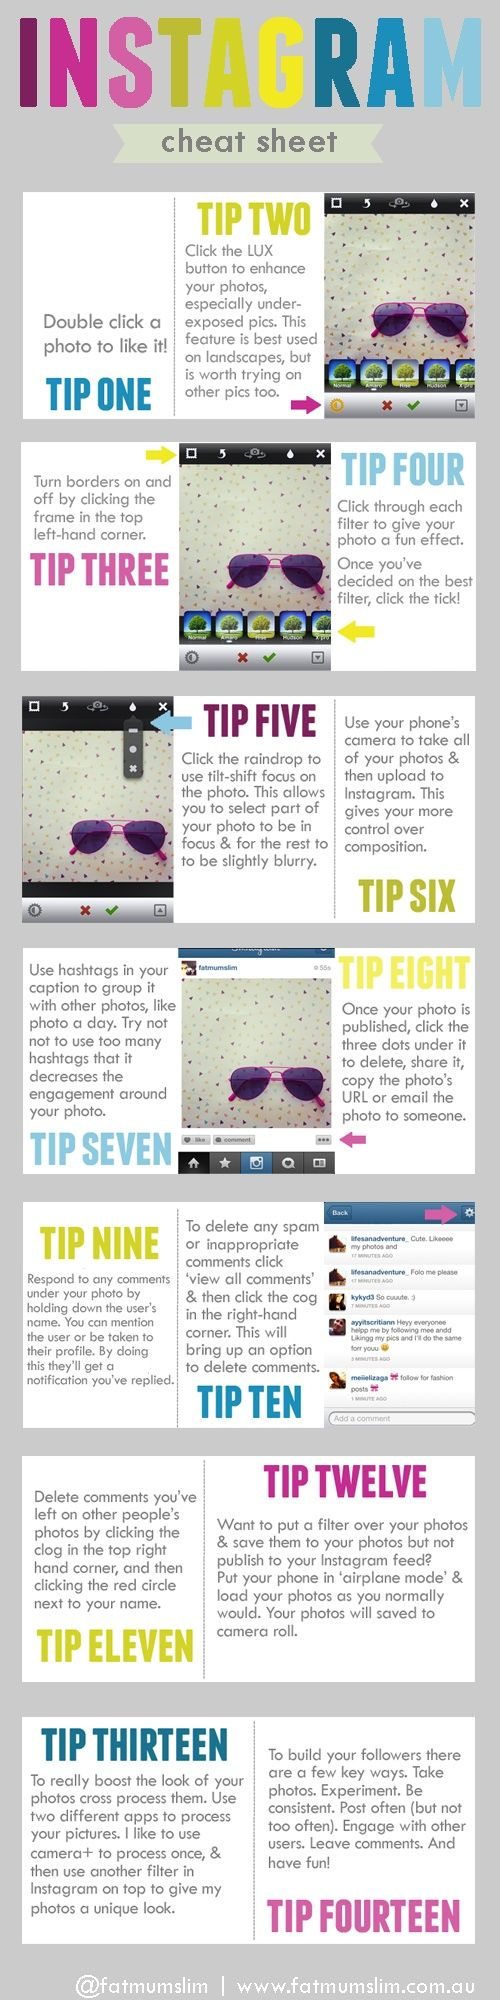 Instagram cheat sheet @fatmumslim.com.au